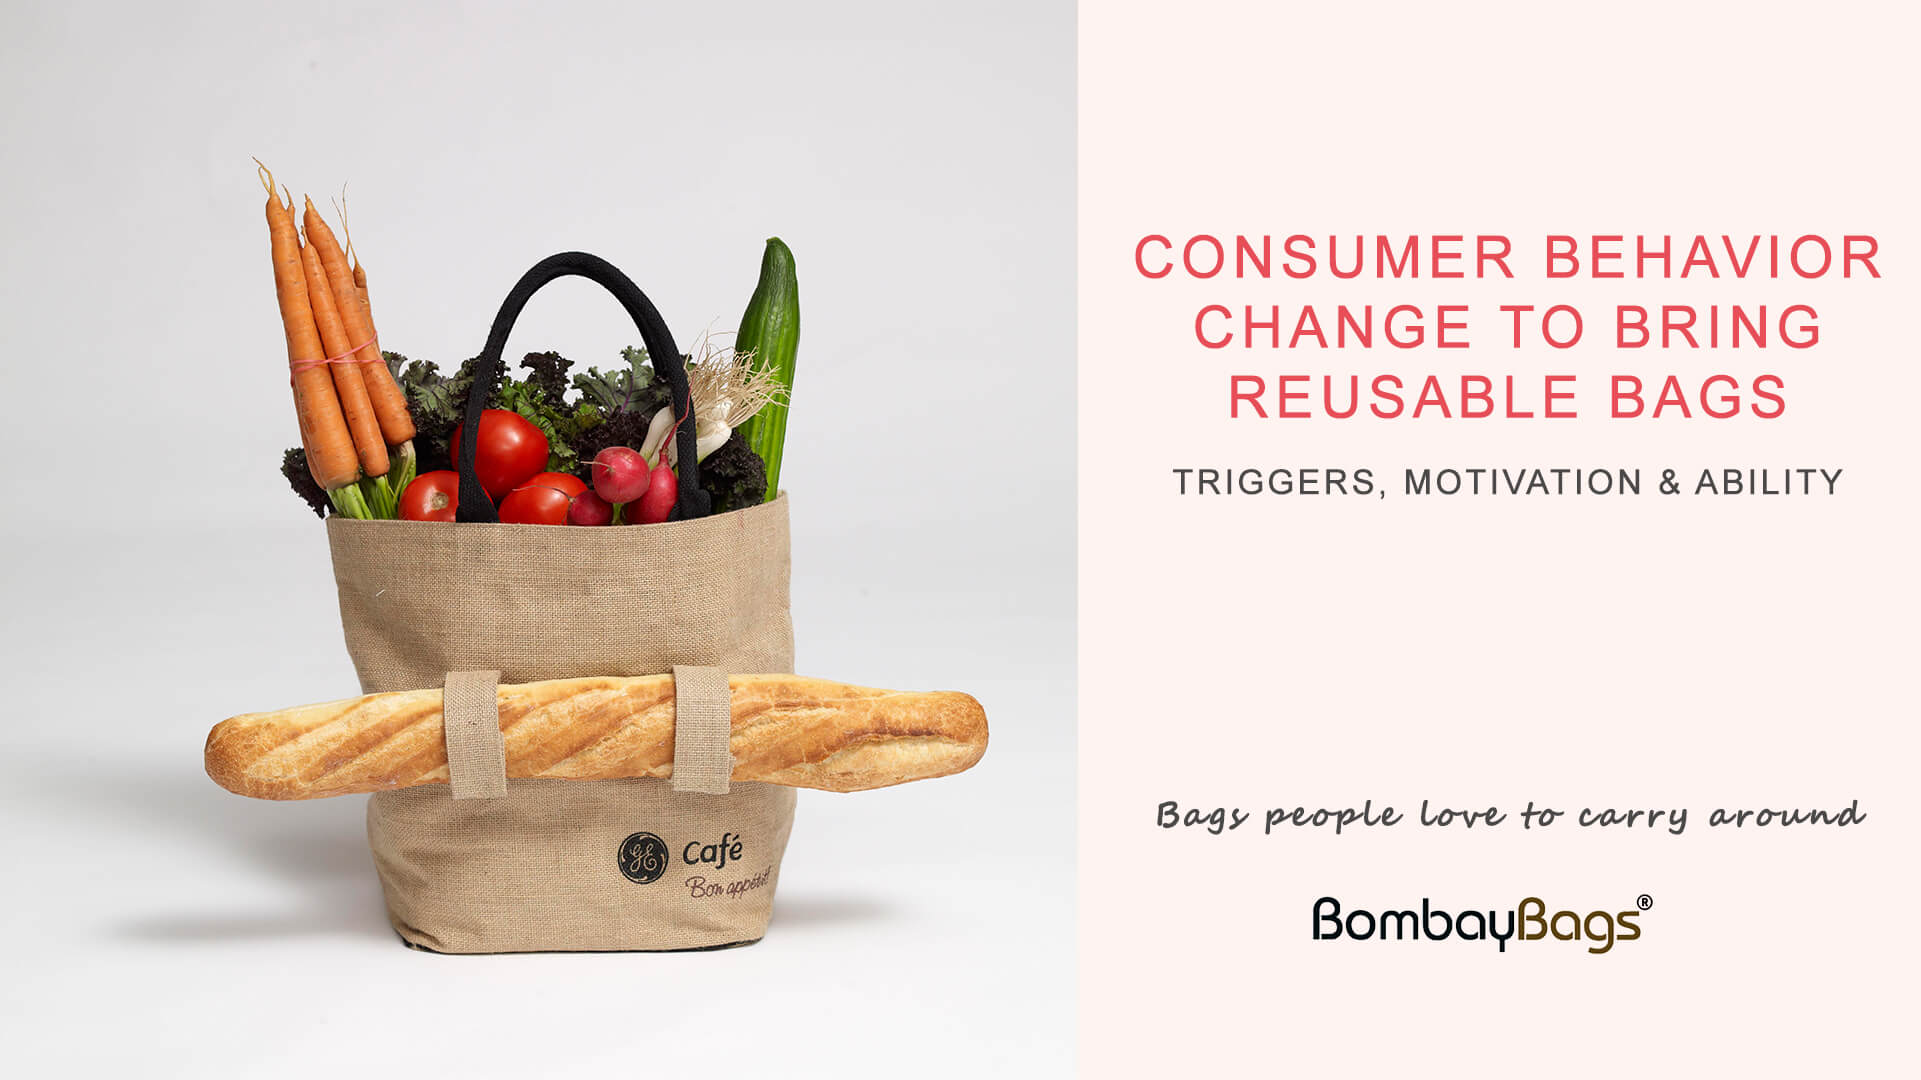 CONSUMER-BEHAVIOR-CHANGE-TO-CARRY-TOTE-BAGS